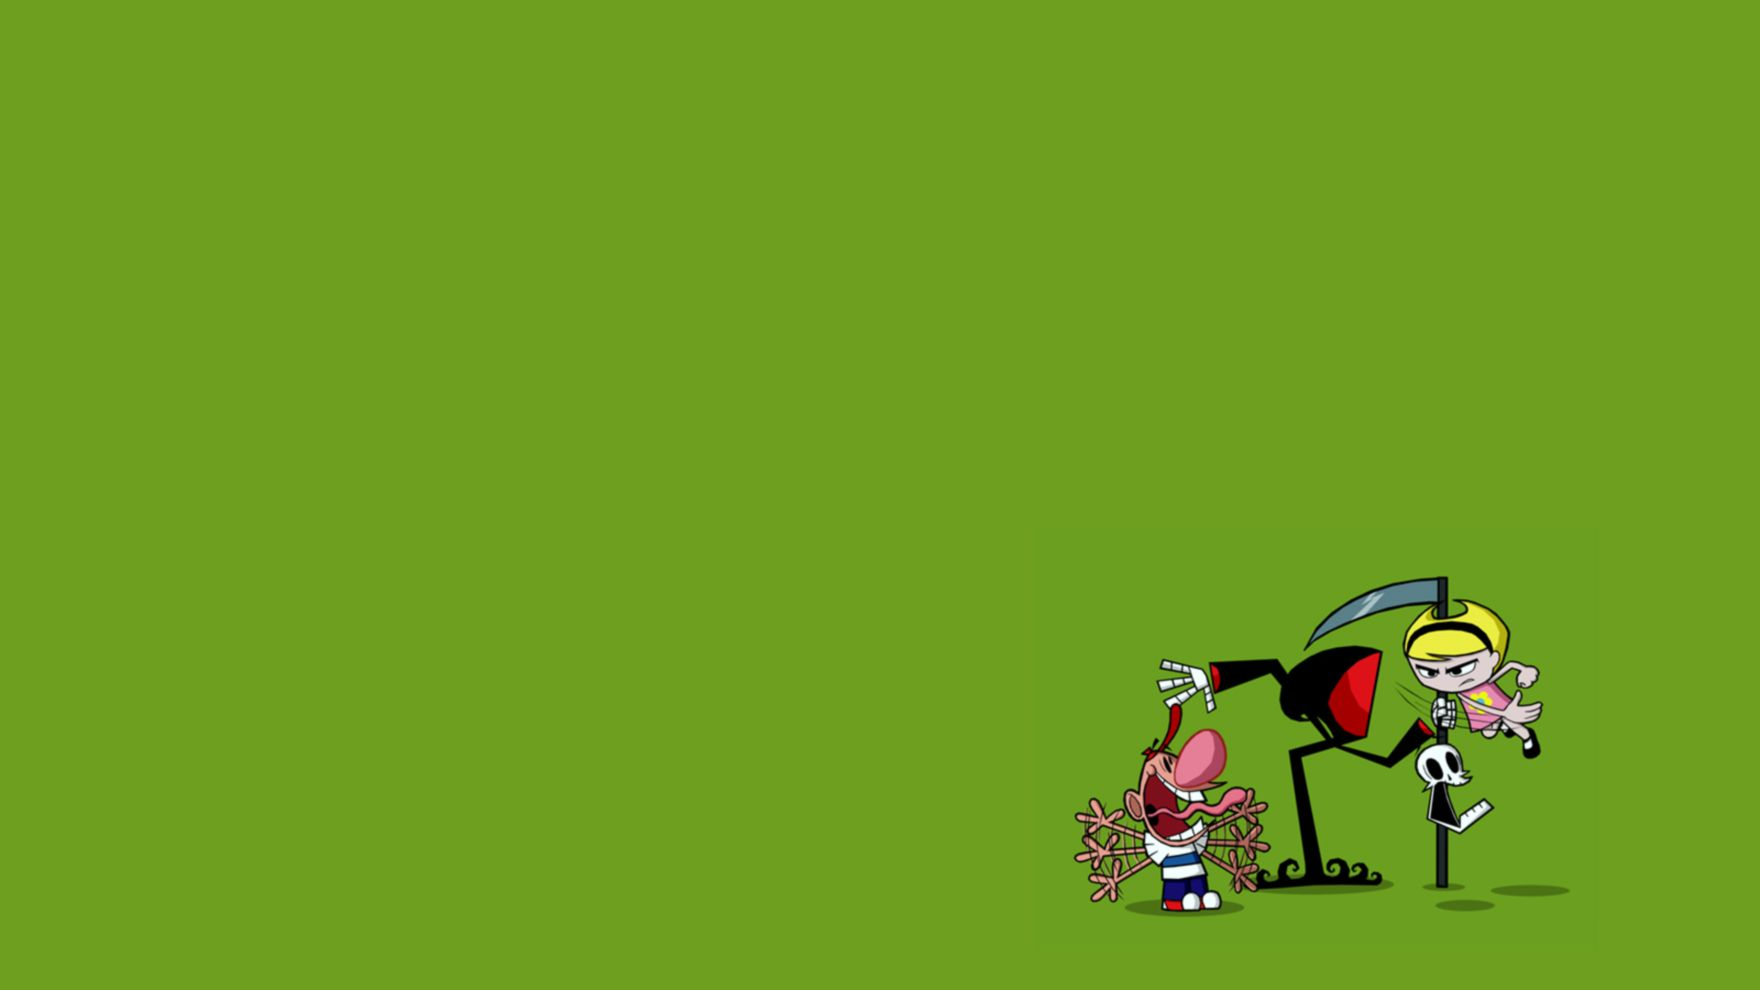 Download free HD Cartoon Green Network HD Free  Wallpaper, image